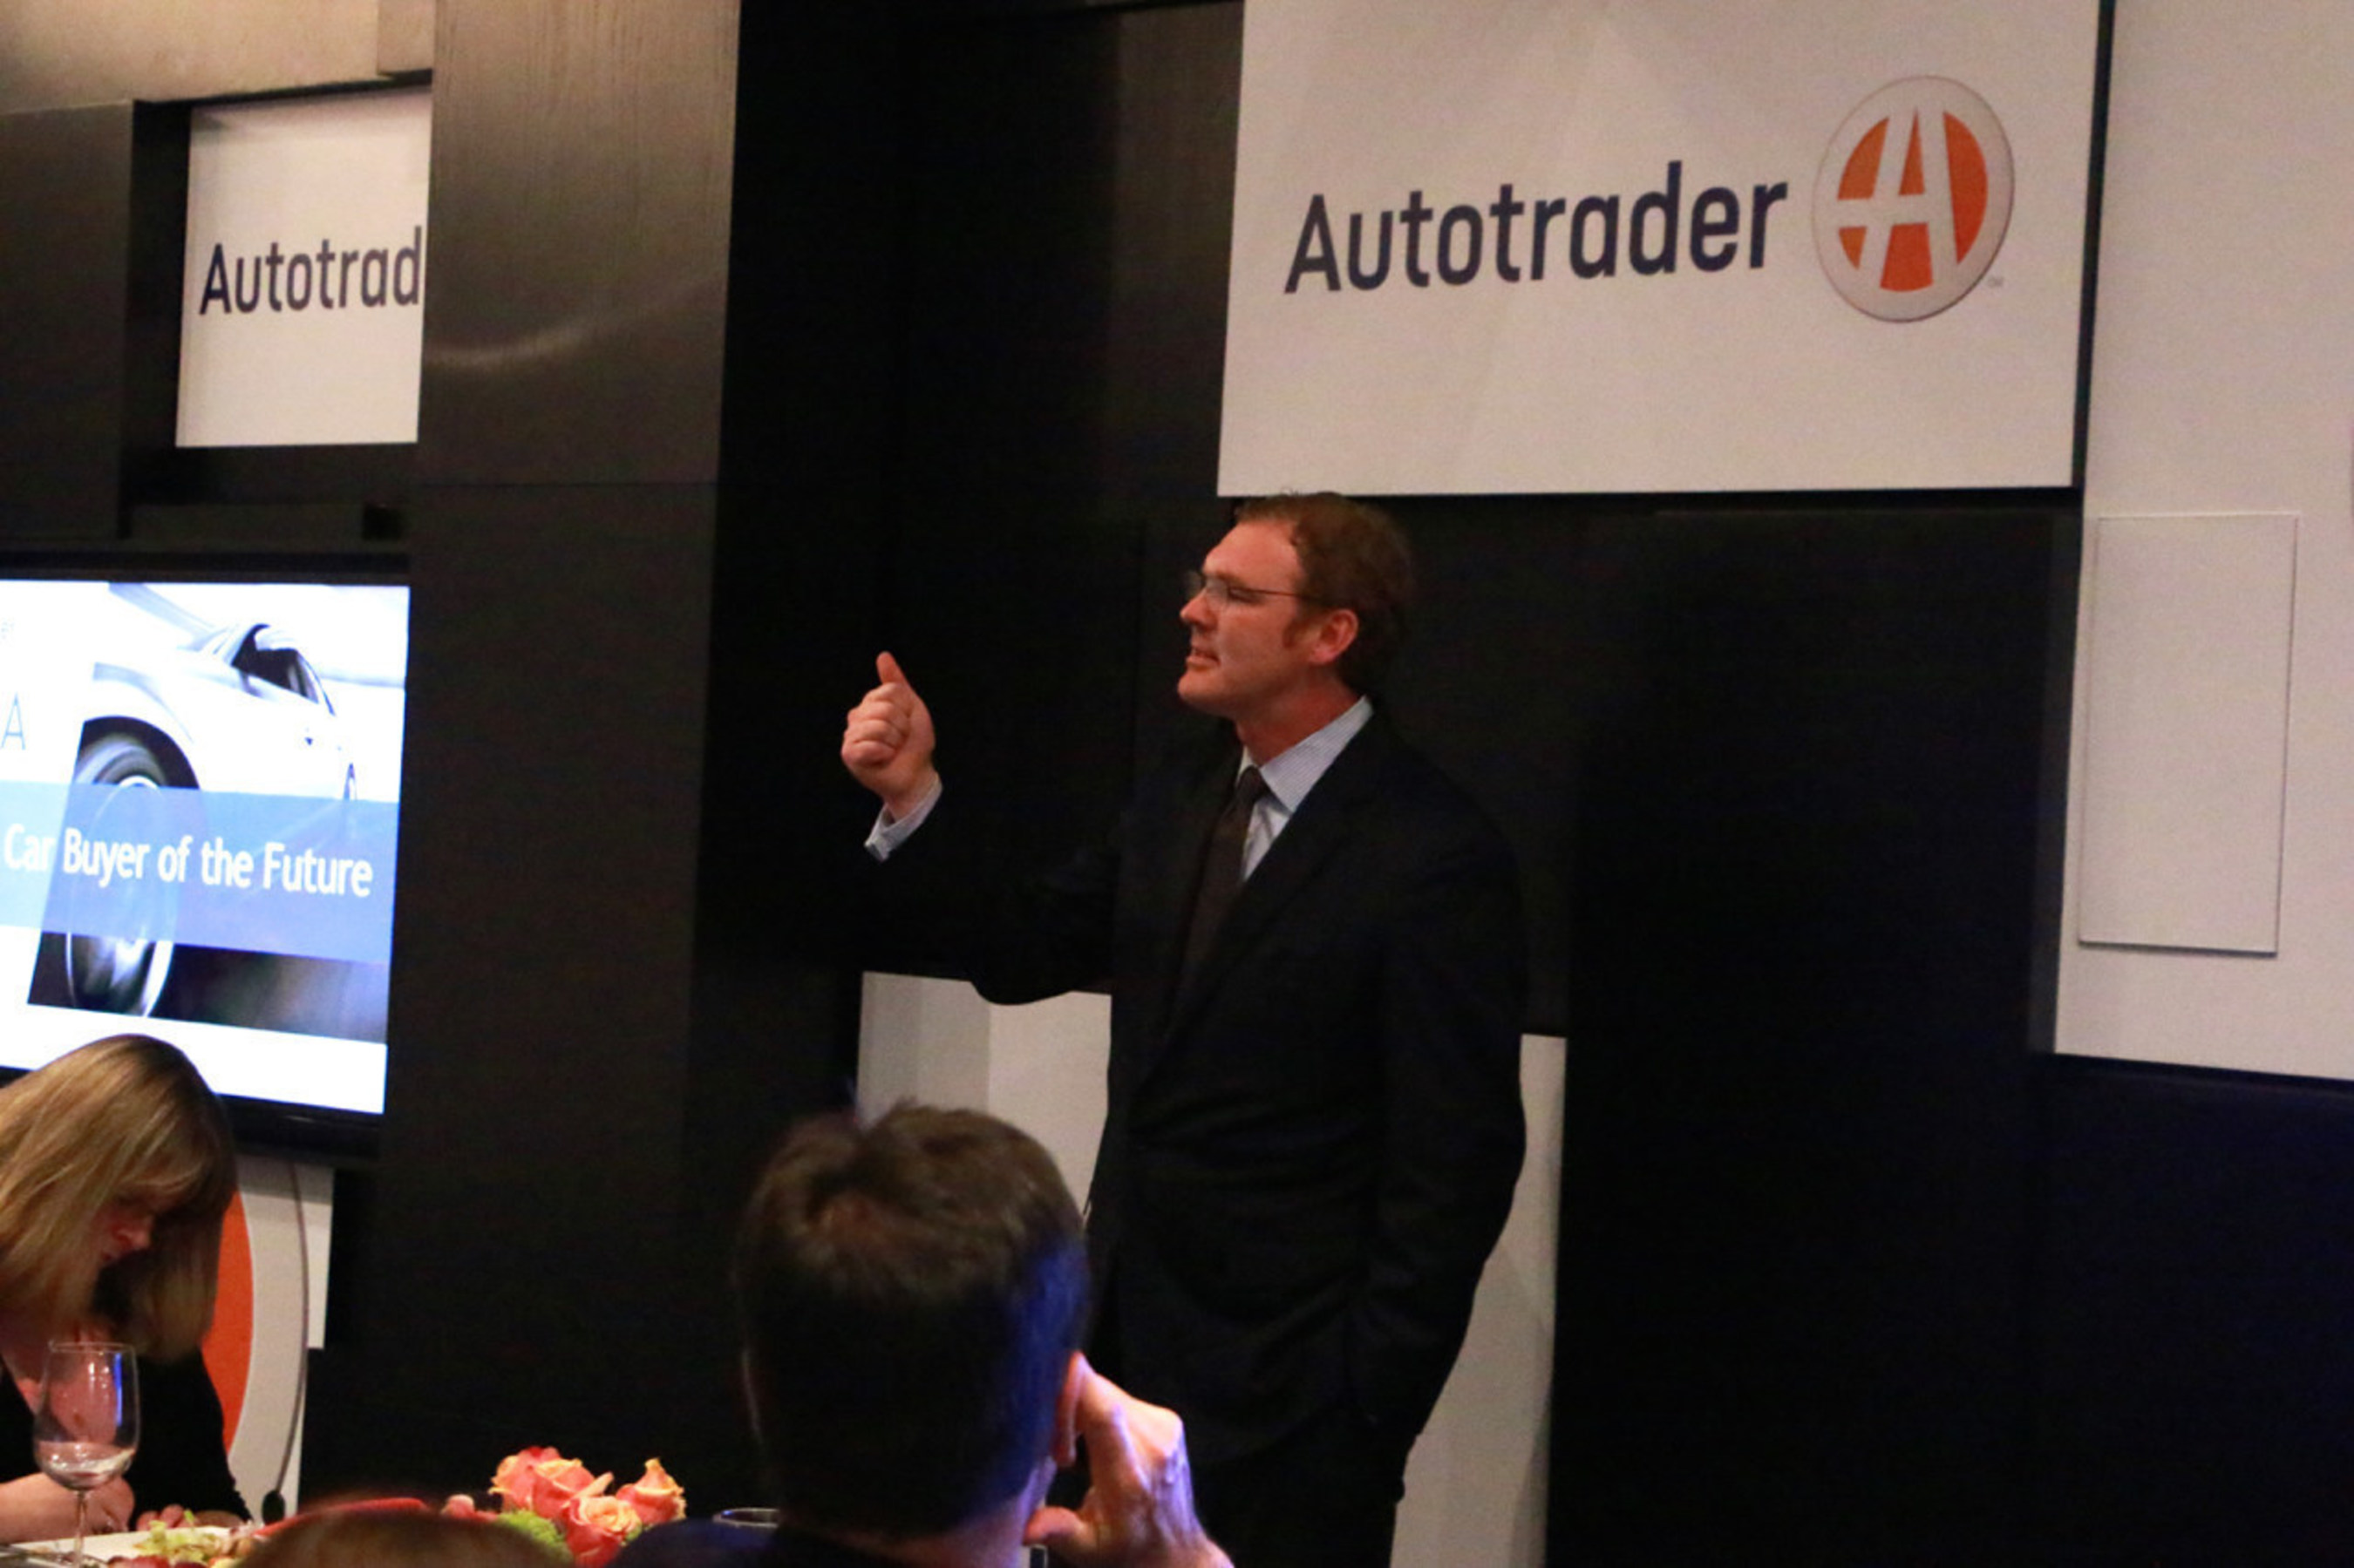 Autotrader President, Jared Rowe, reveals insights from the Autotrader Car Buyer of the Future Study in New York on March 30.